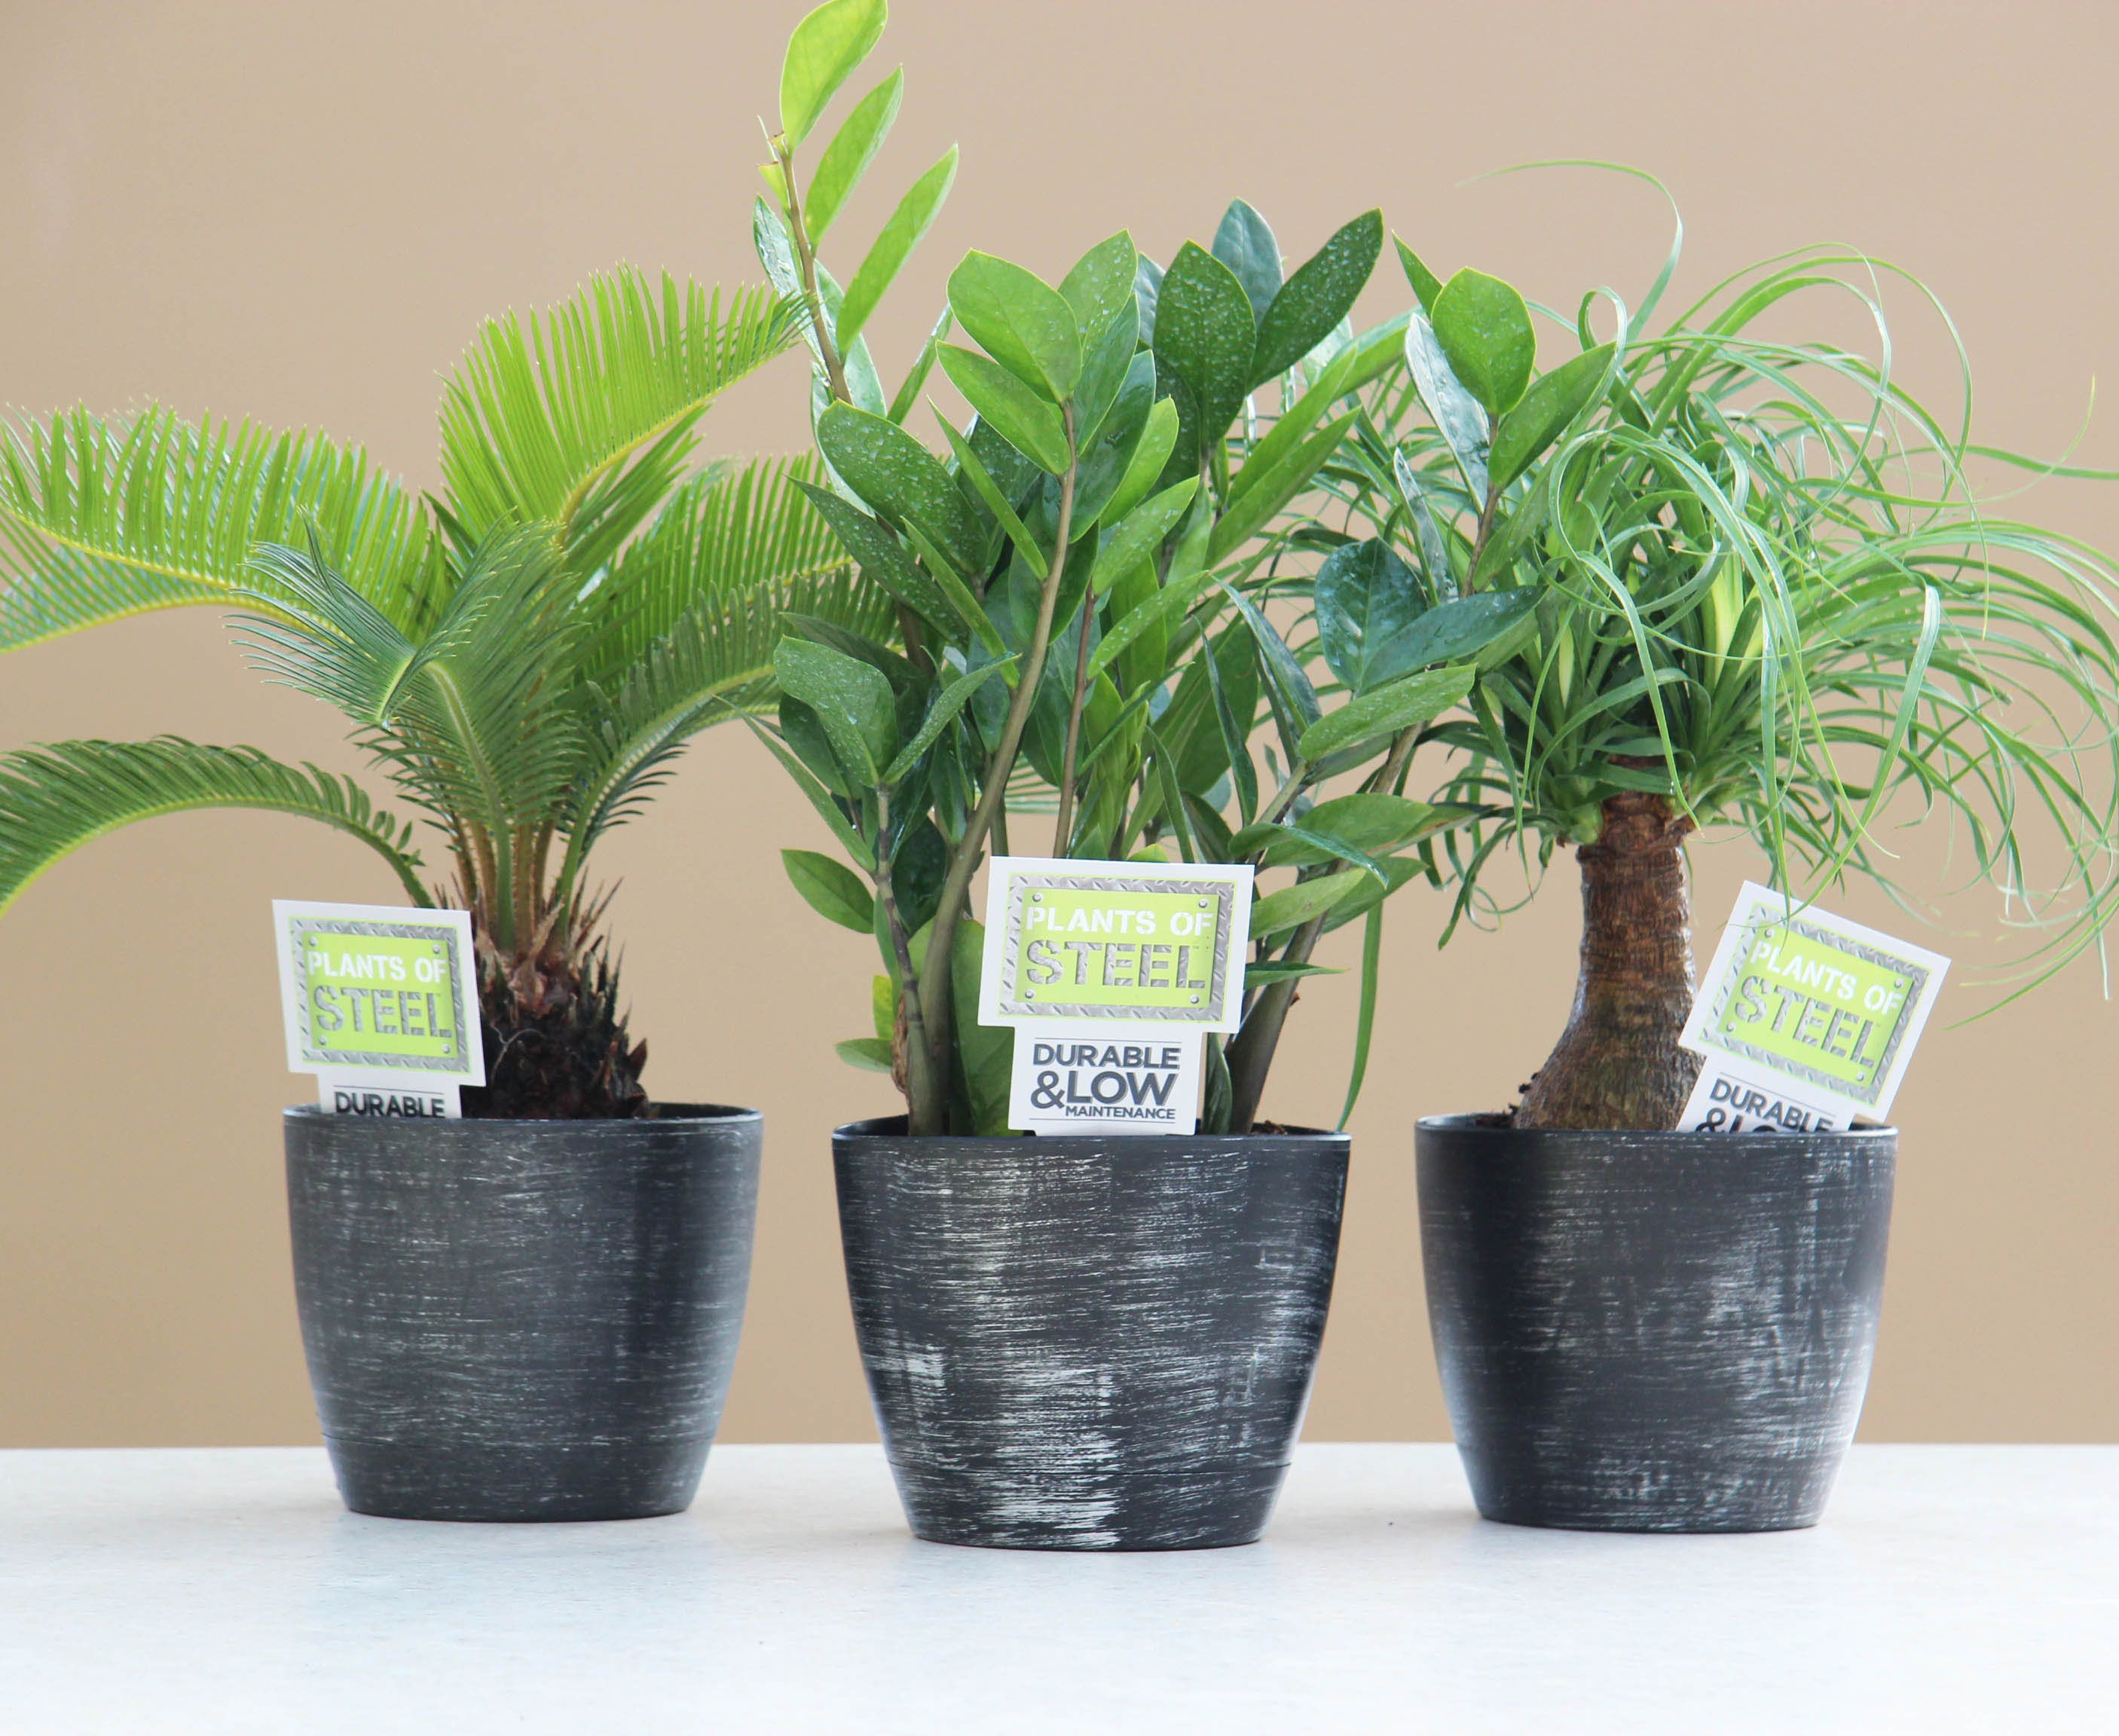 Easy Care Indoor Trees Plants Of Steel Easy To Care For House Plants Tropical